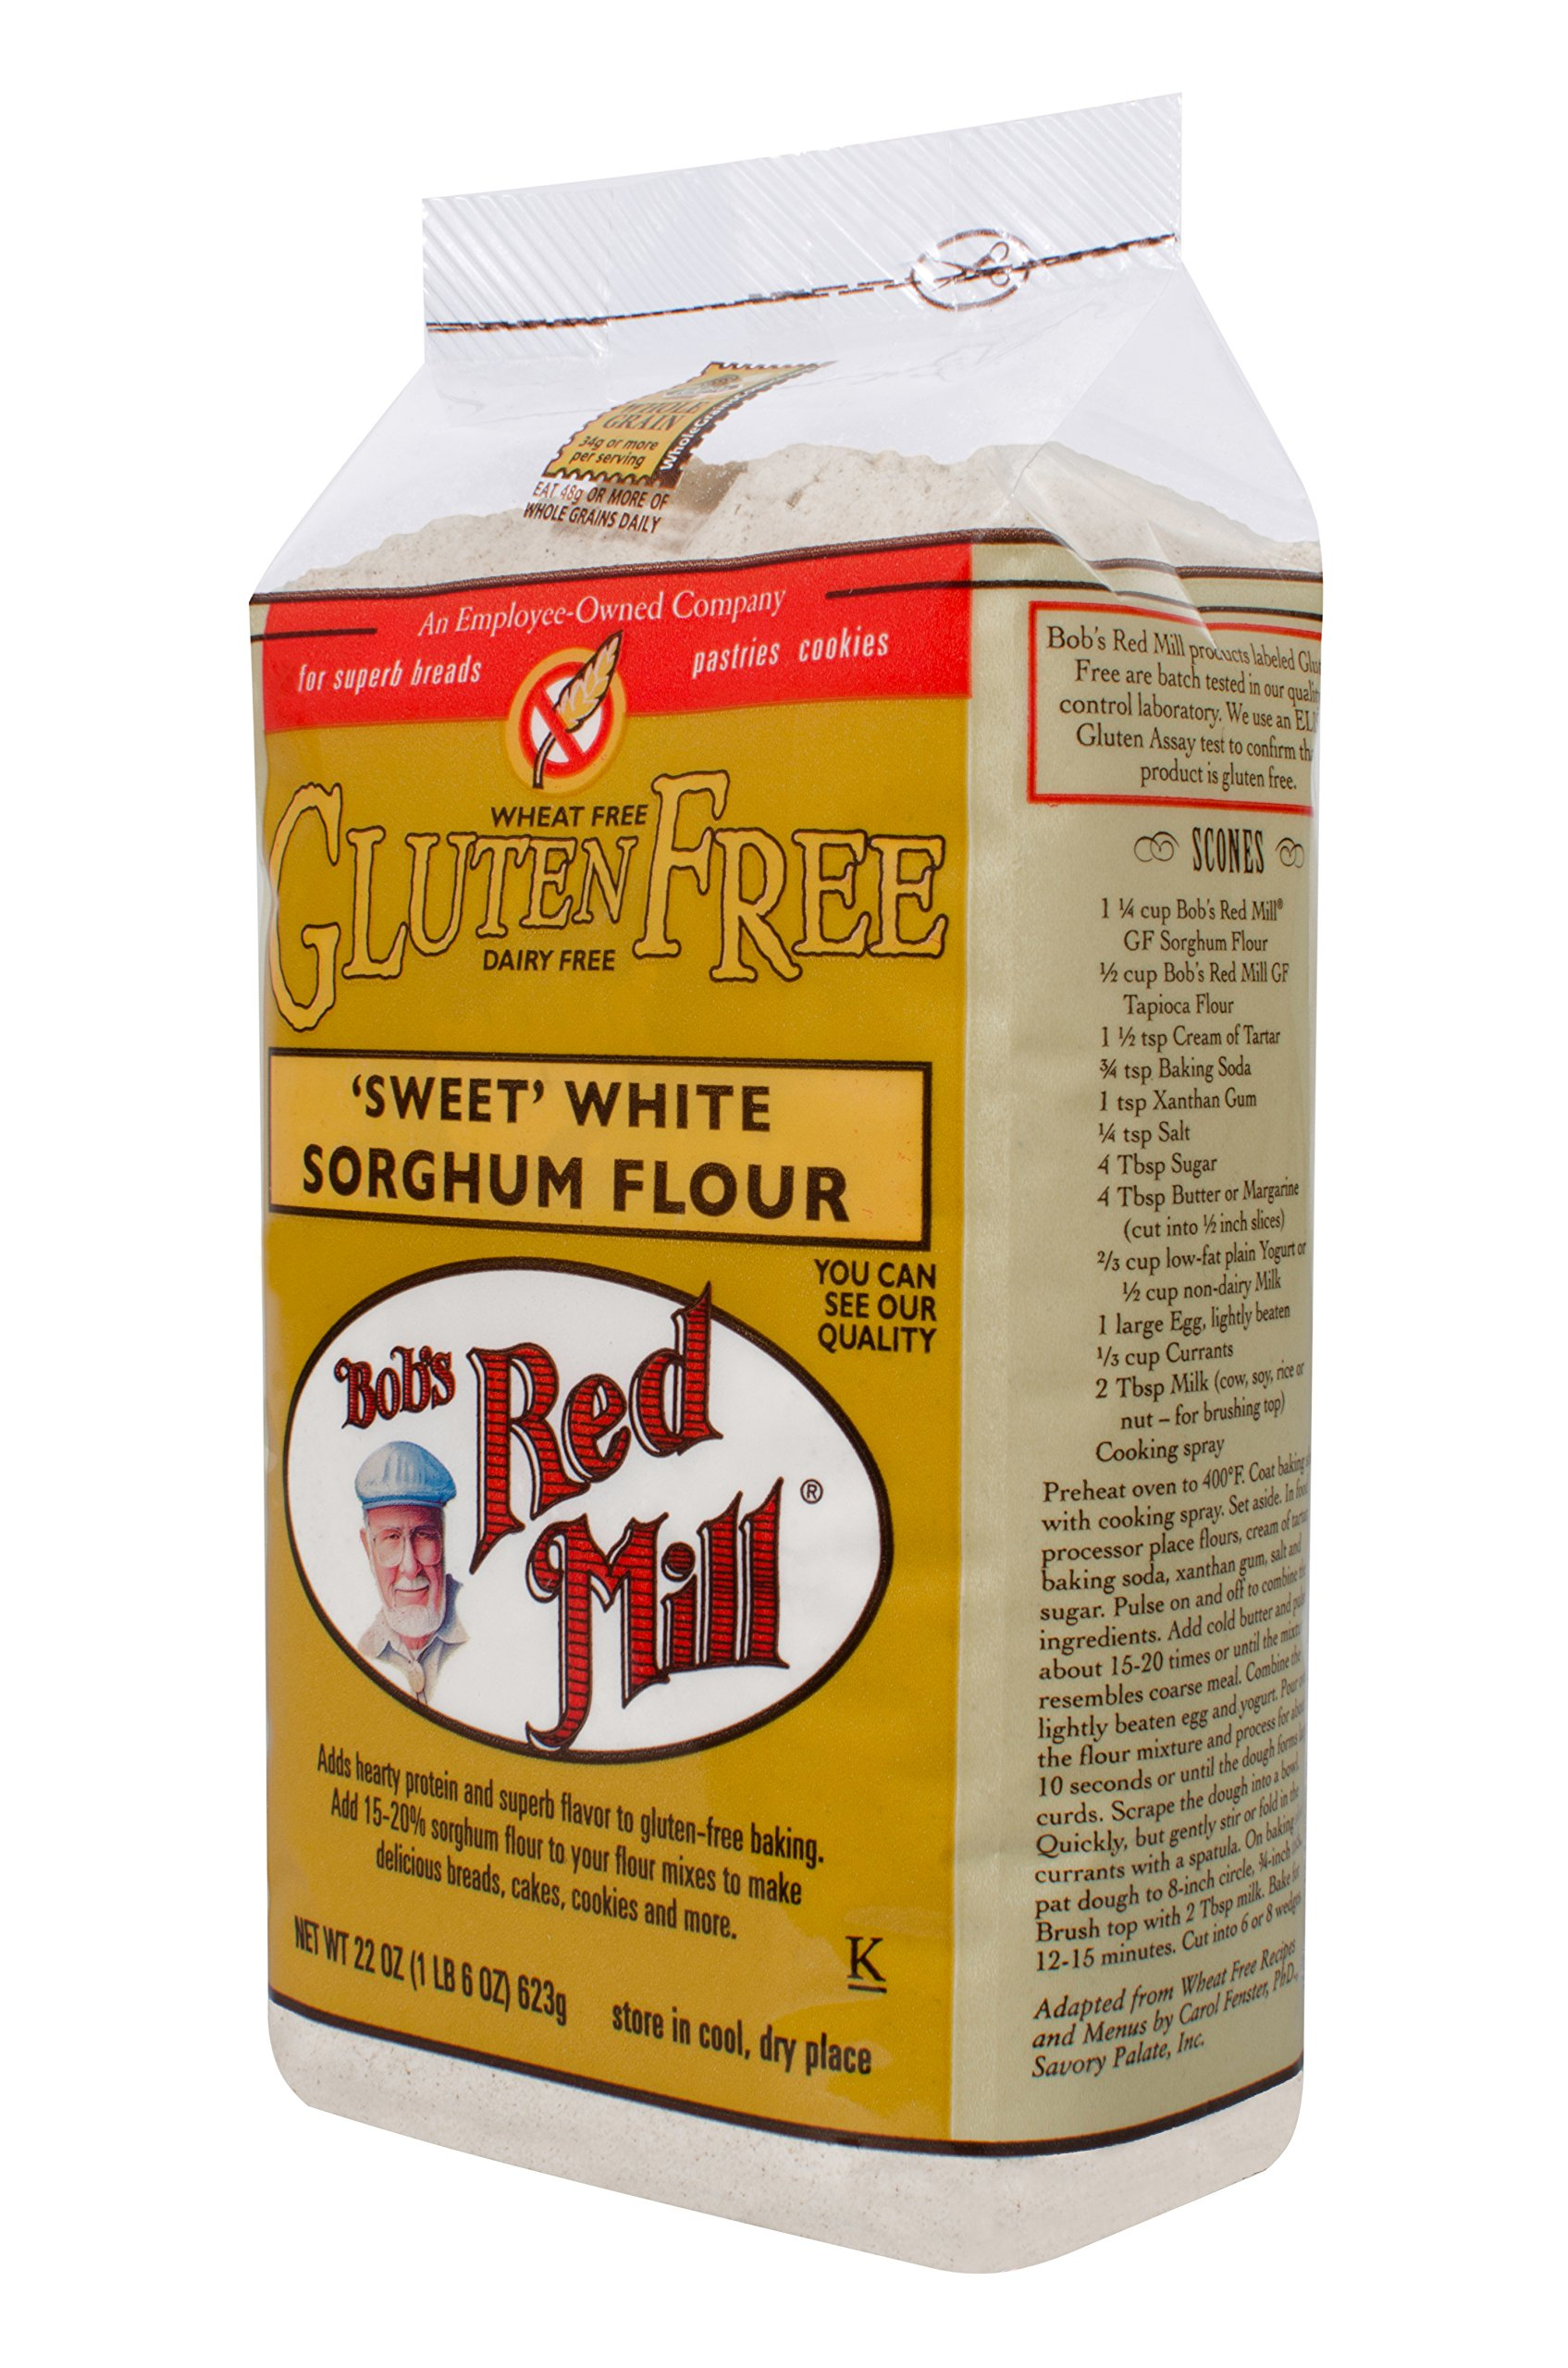 Bob's Red Mill Gluten Free Sweet White Sorghum Flour, 22-ounce by Bob's Red Mill (Image #4)